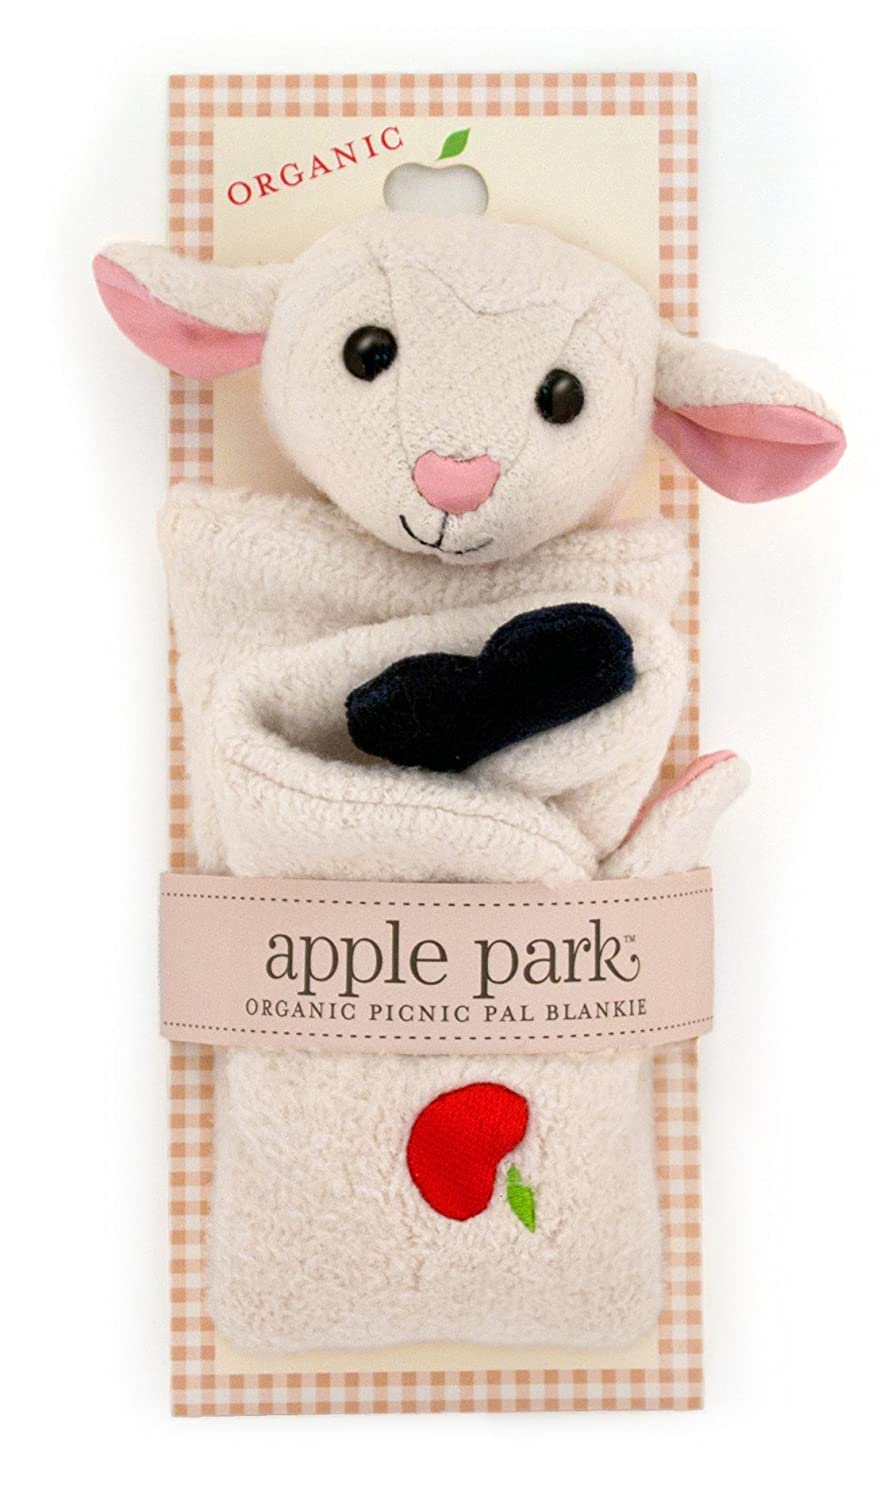 Apple Park Picnic Pals - Lamby Blankie, Blanket Baby Toy for Newborns, Infants, Toddlers - Hypoallergenic, 100% Organic Cotton